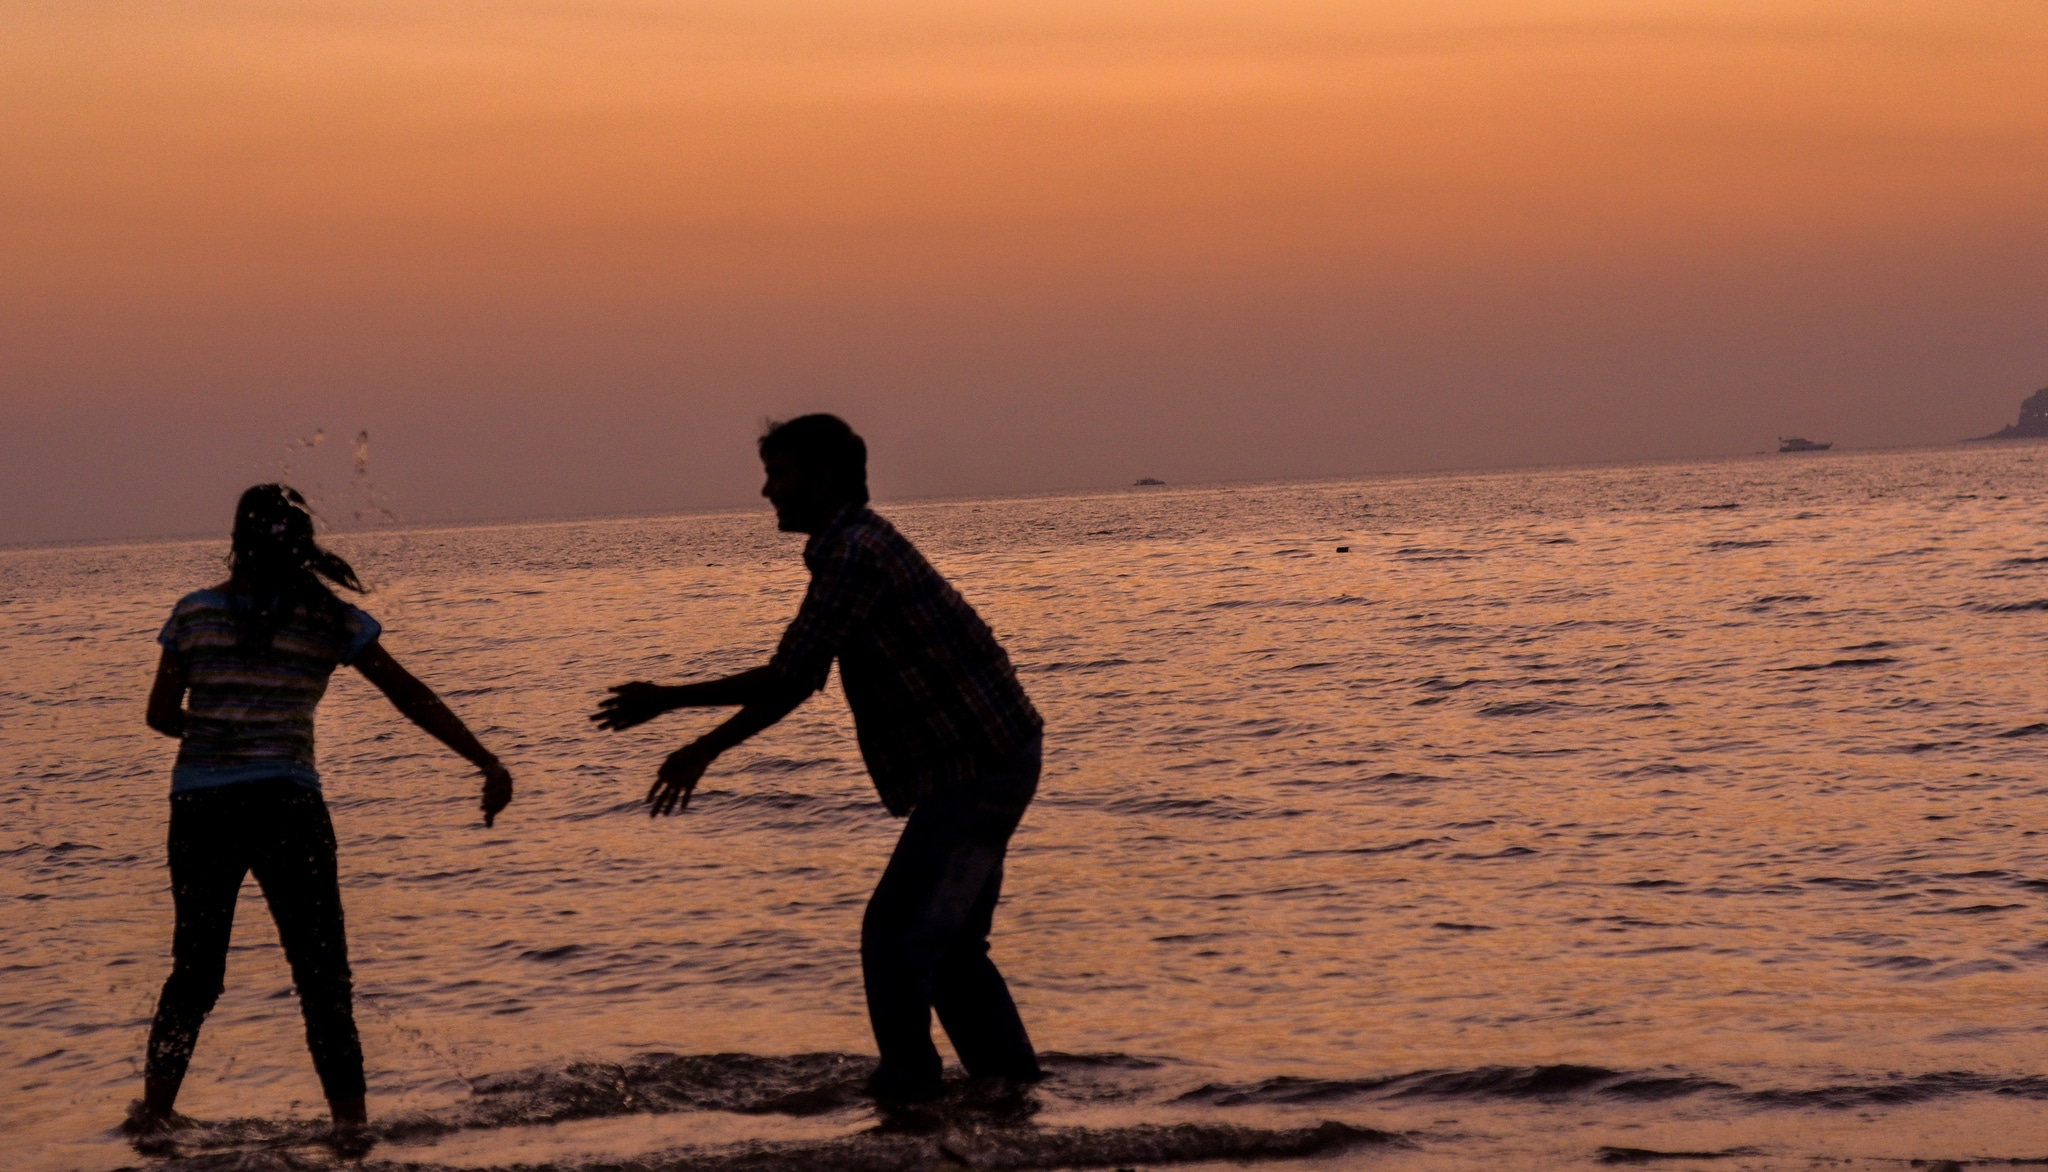 two people playing in water